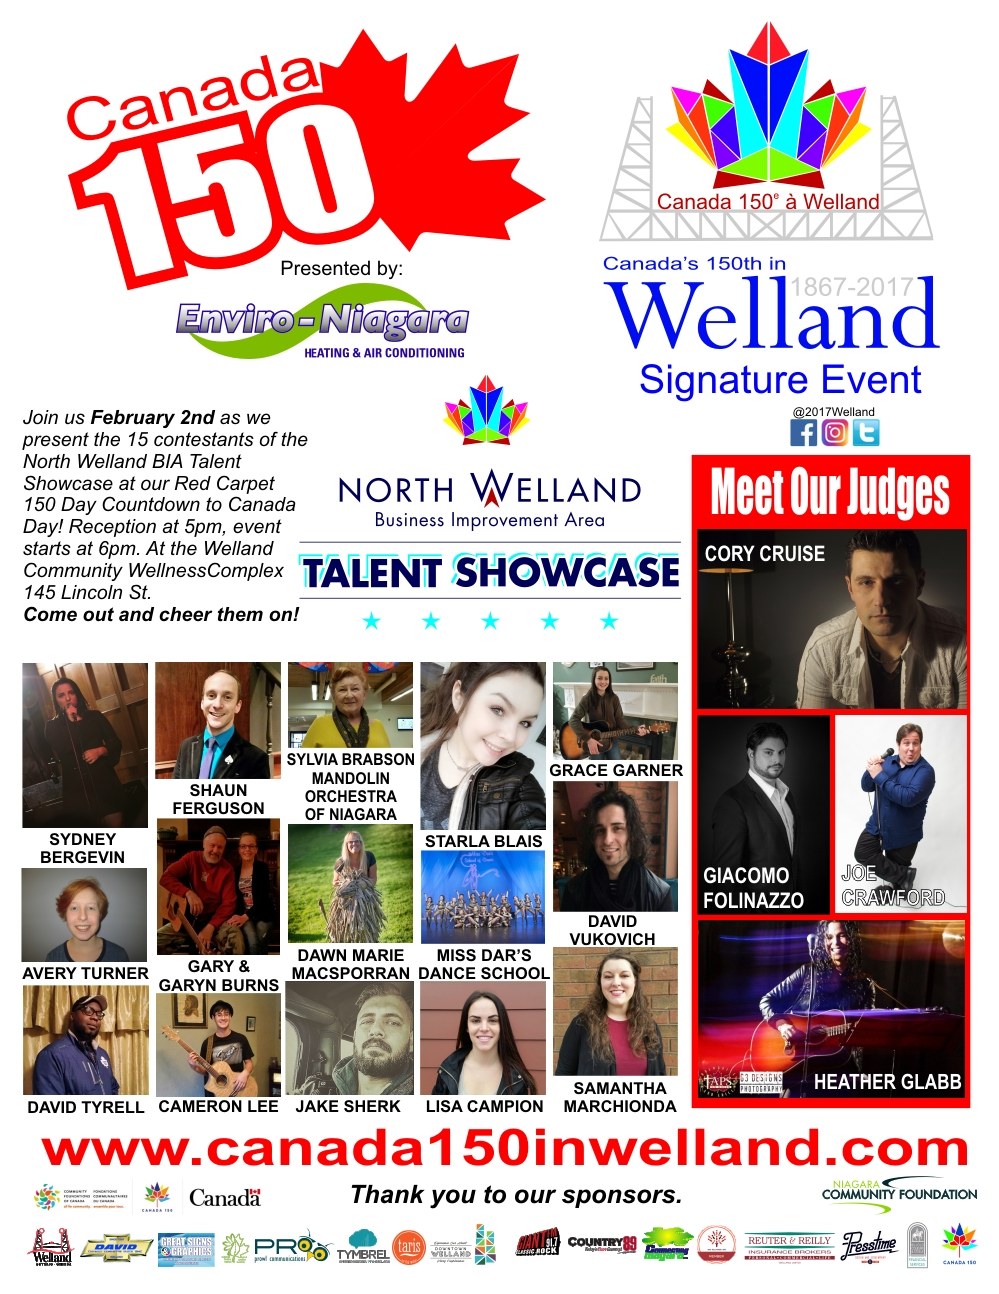 North Welland BIA Talent Showcase